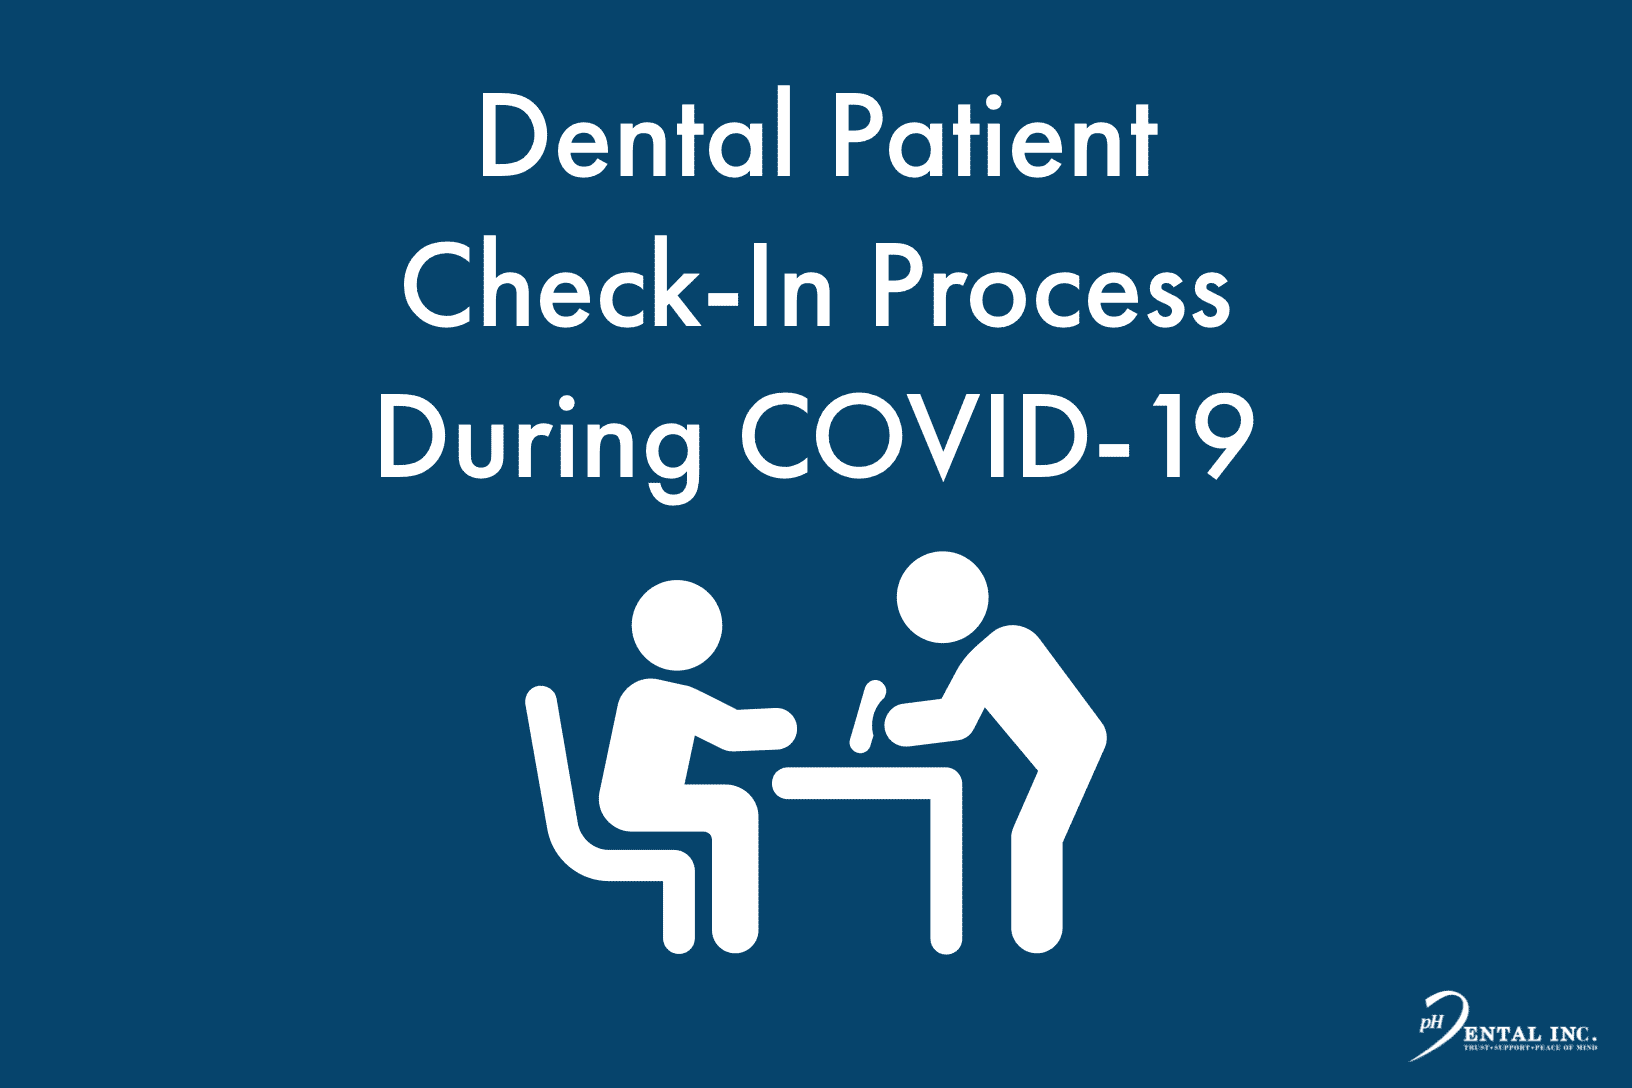 dental patient check in process during COVID-19